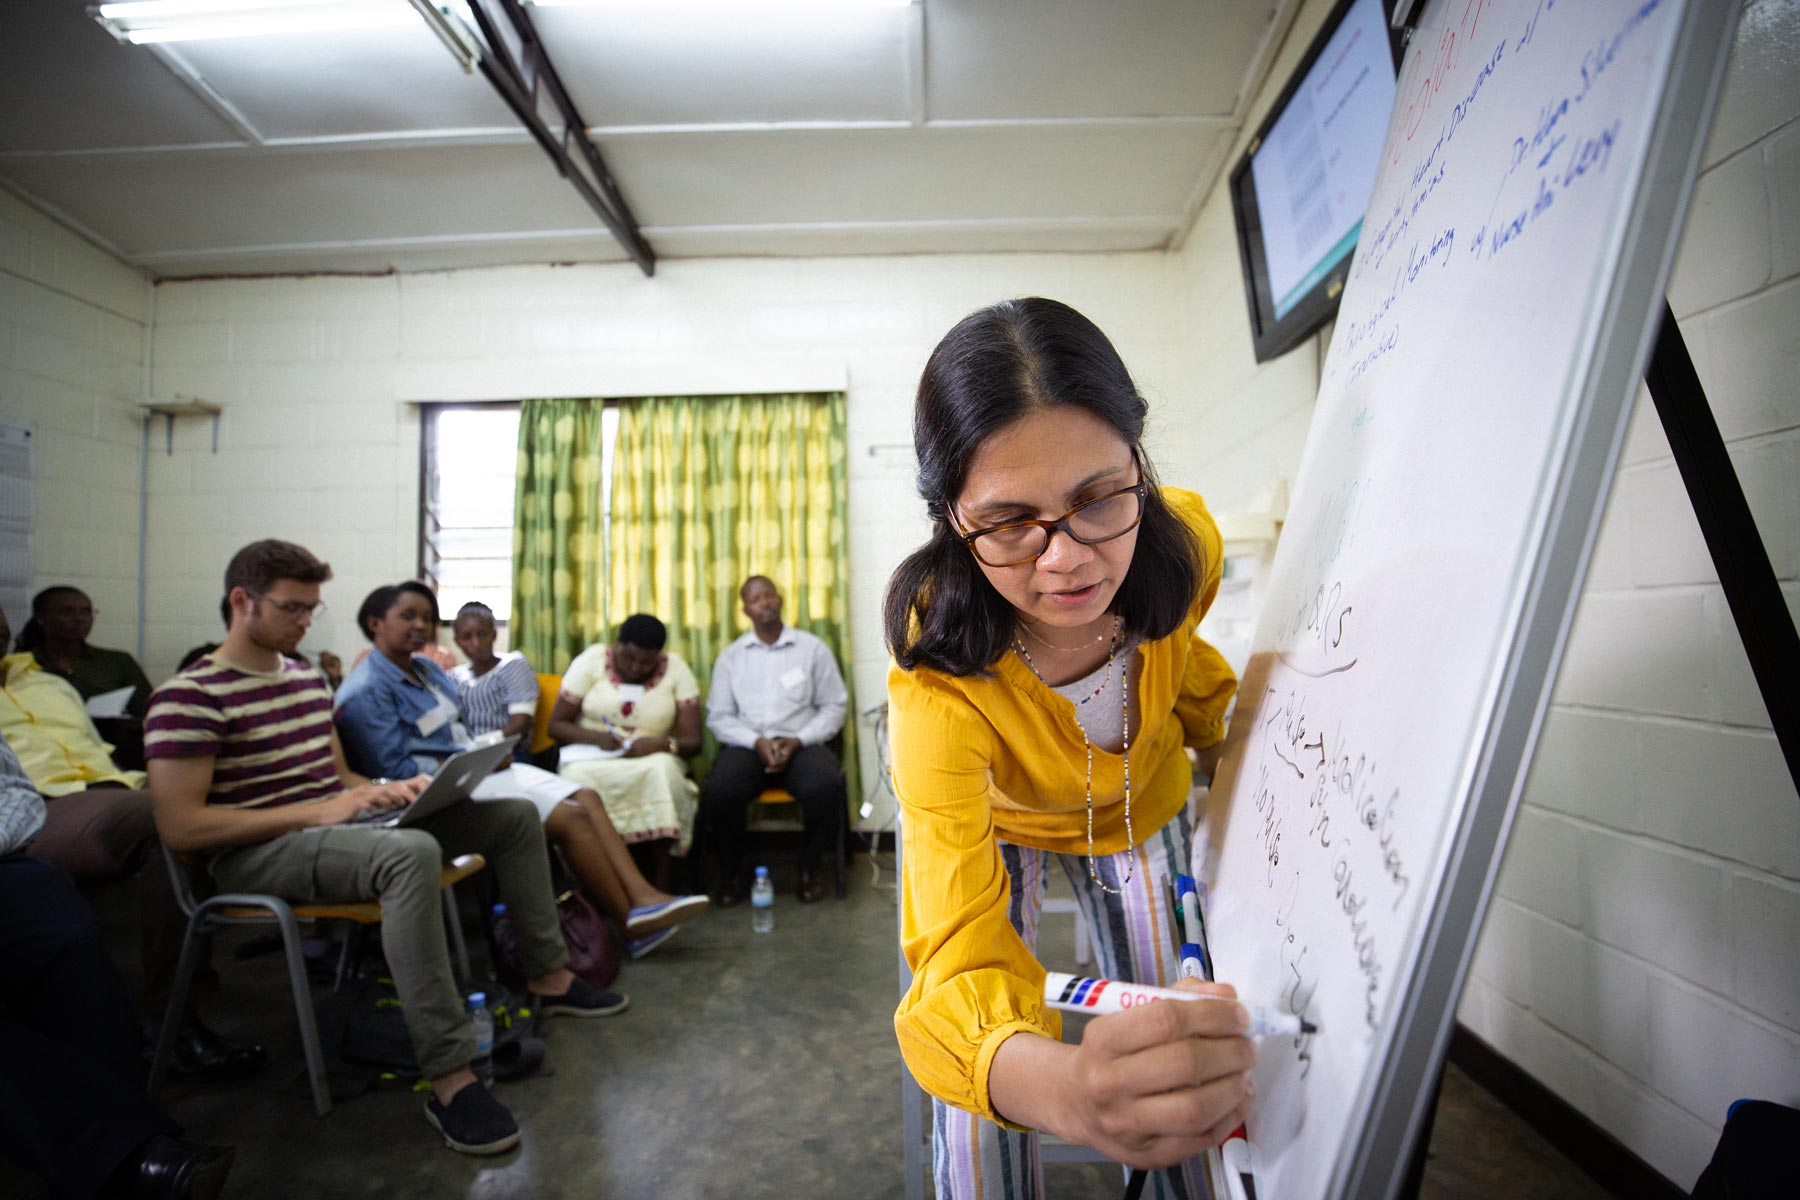 Dr. Shenoi writes on a whiteboard while training with doctors and nurses in Rwanda.